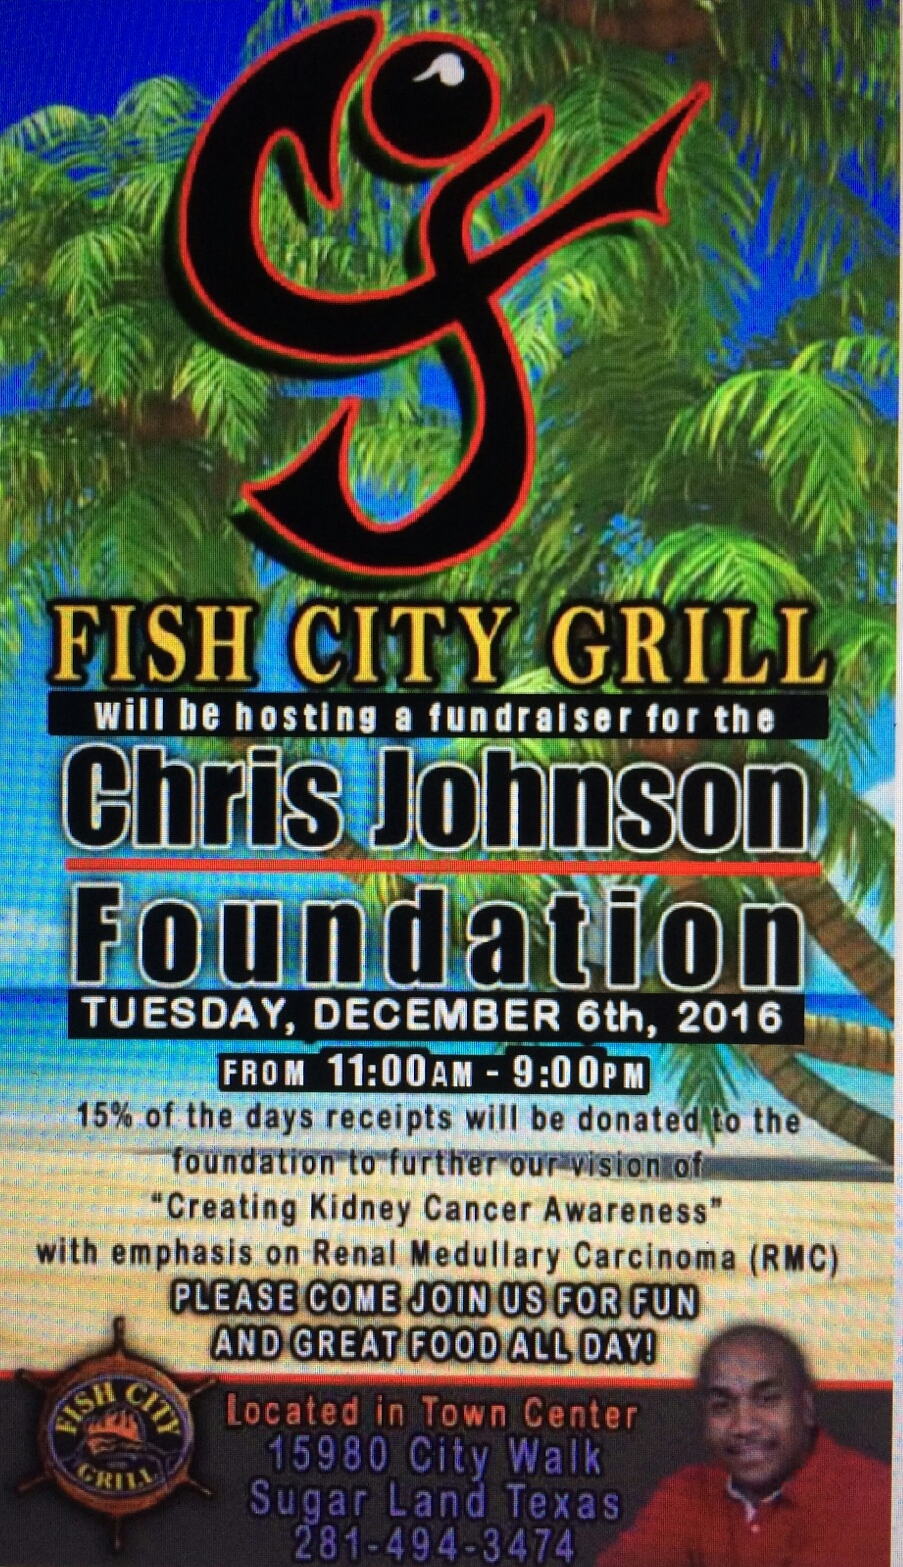 Fish City Grill-Sugar Land